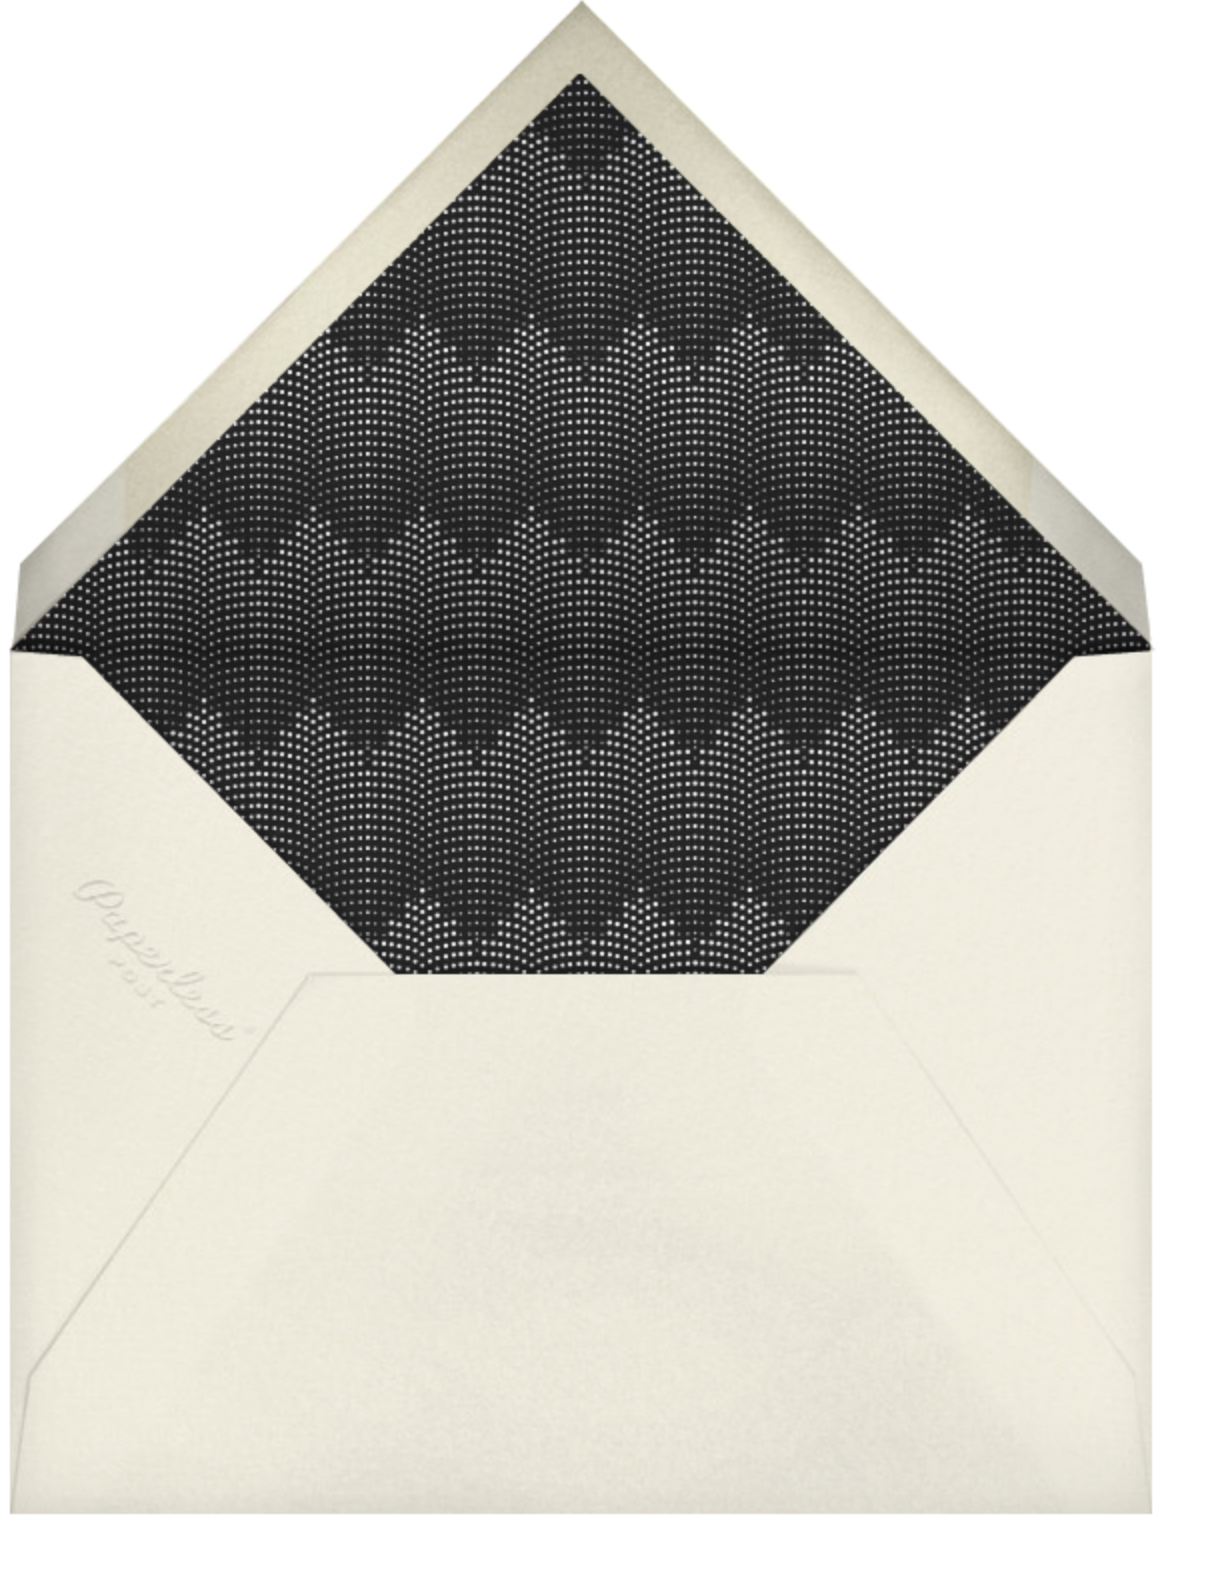 Rosina Photo - Black - Paperless Post - Professional events - envelope back